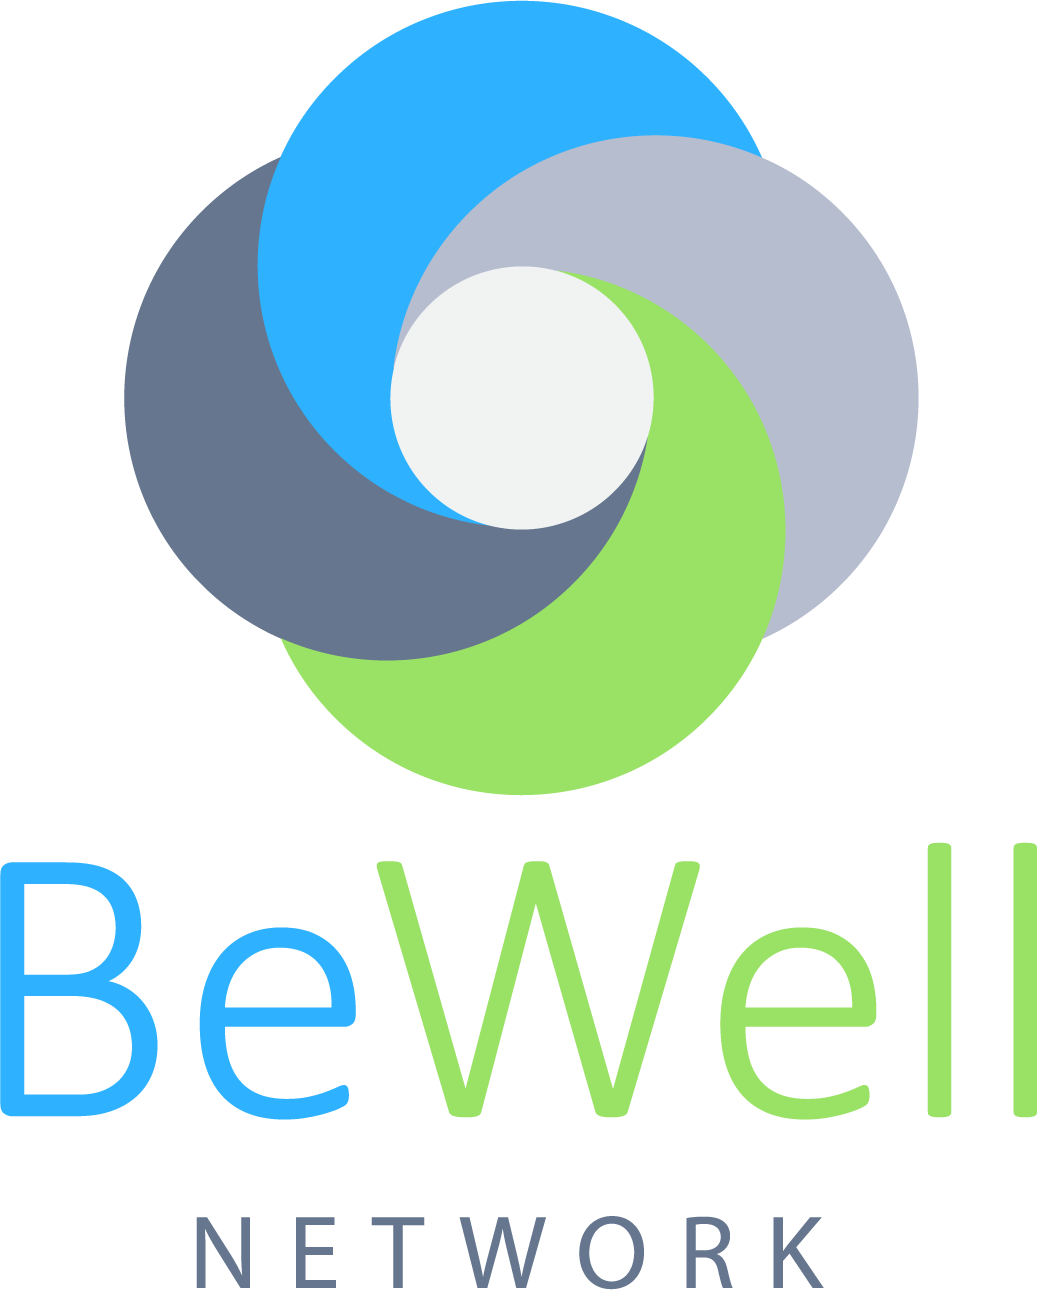 BeWell Network